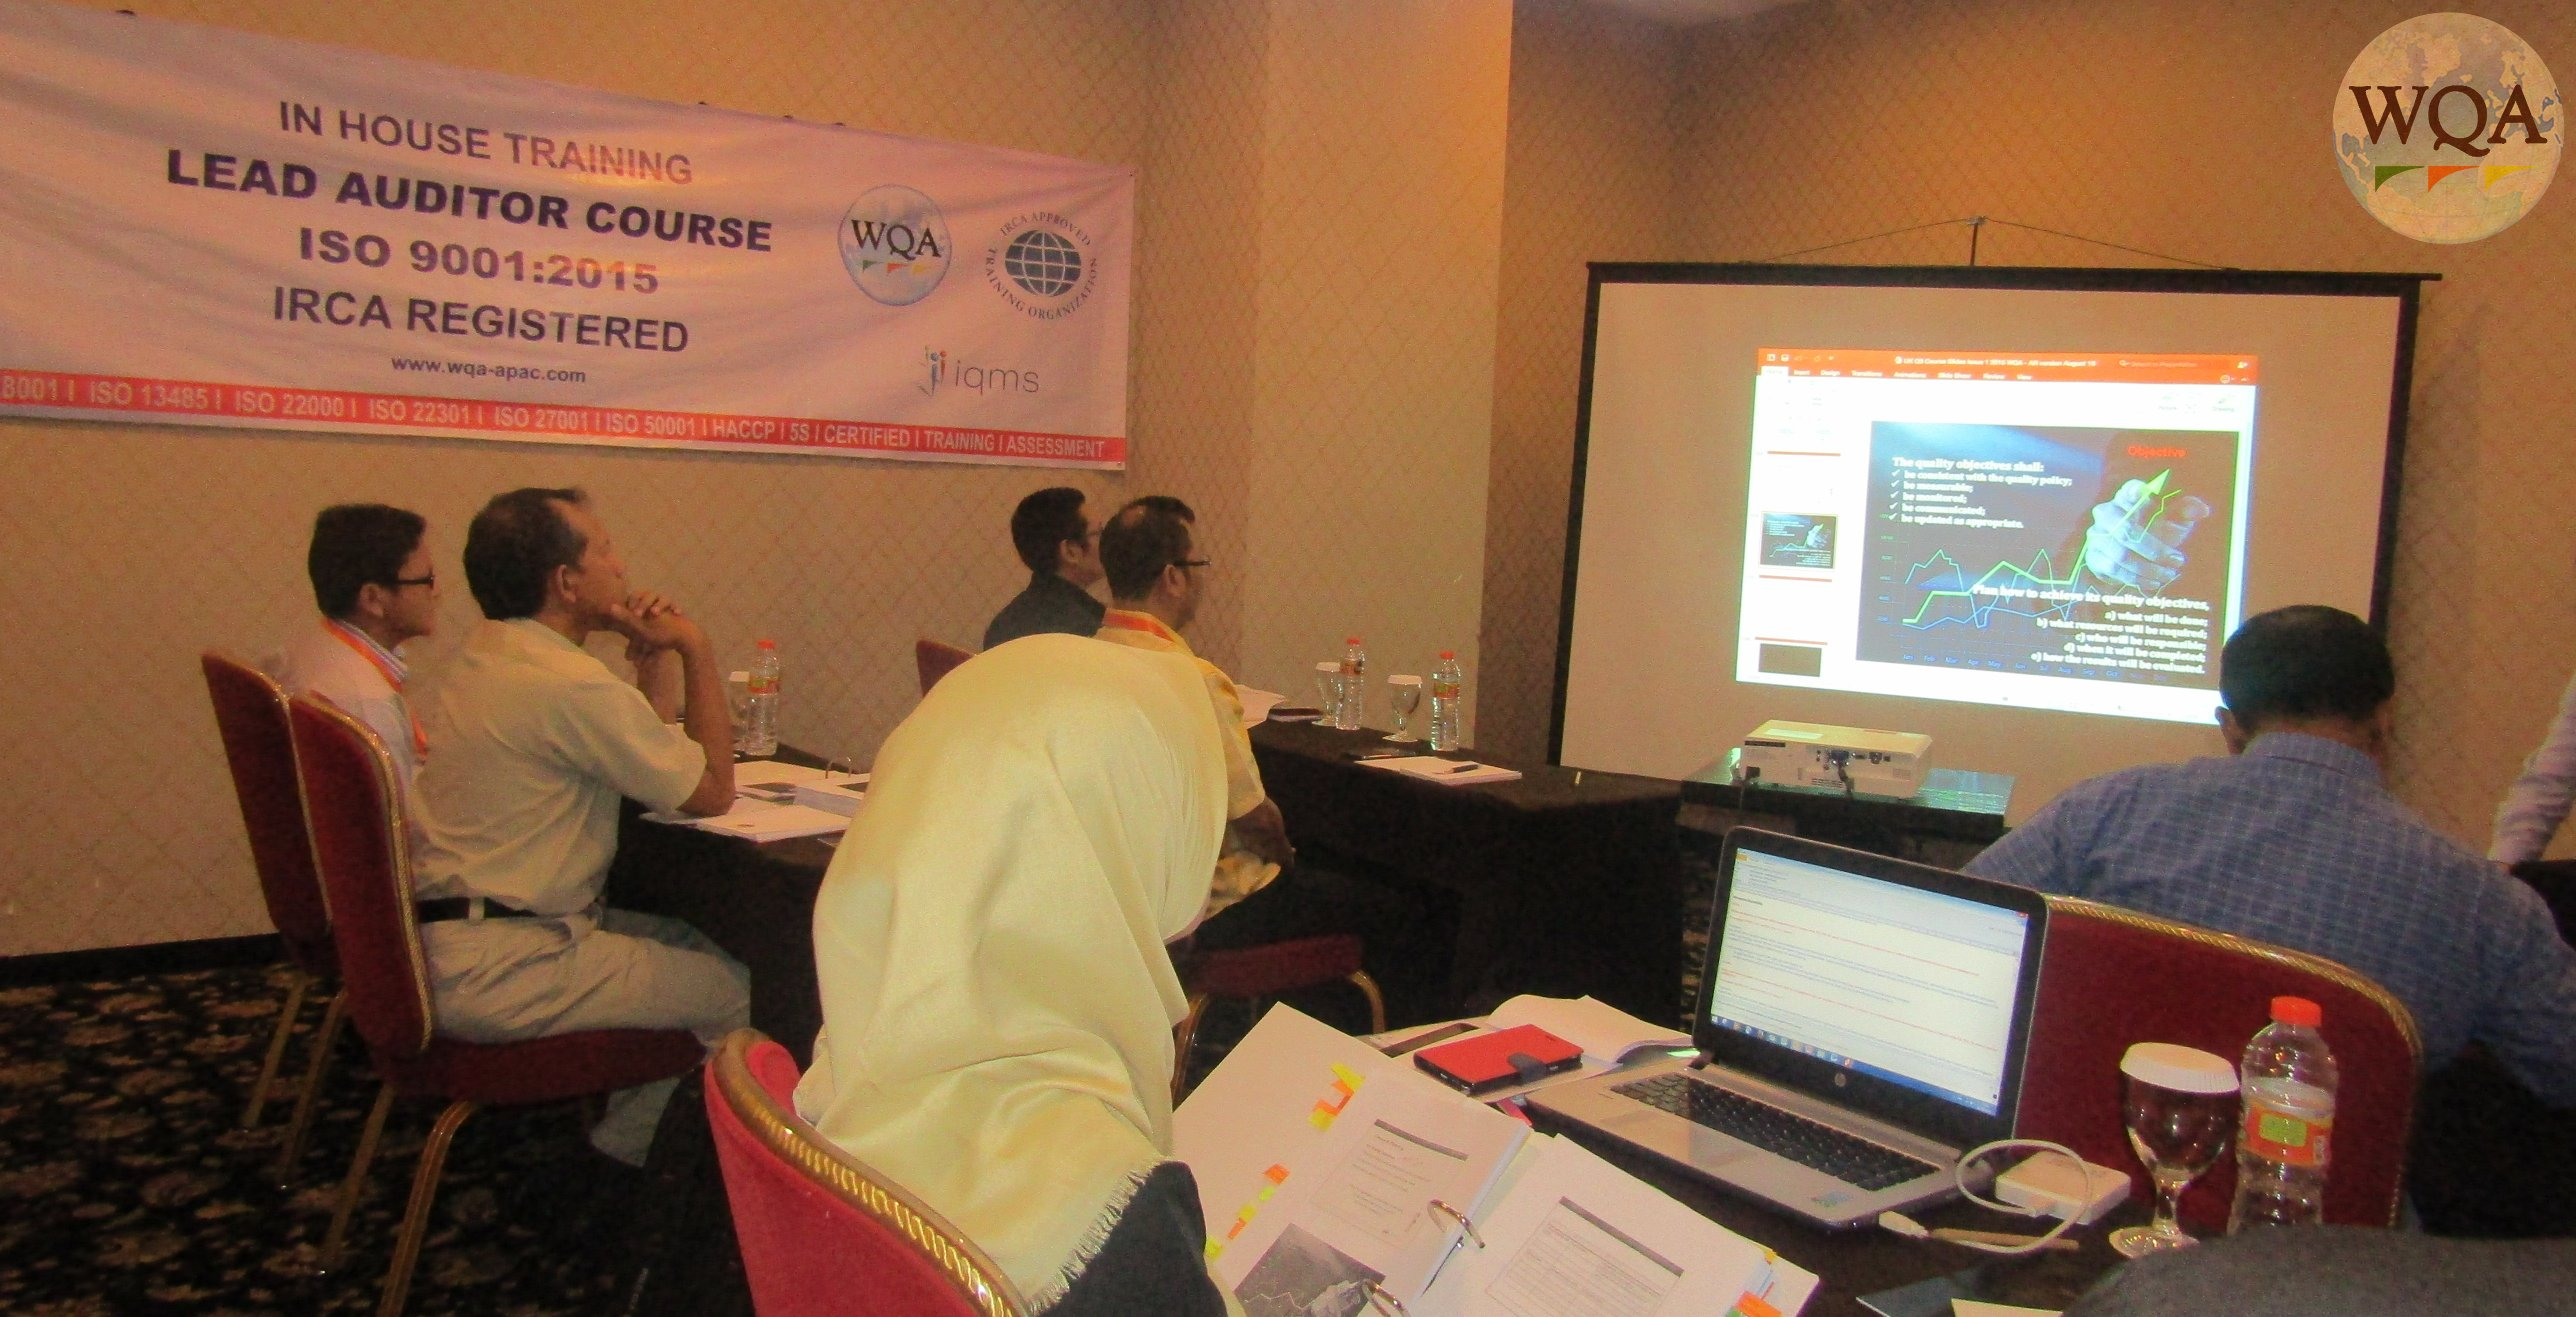 in house training - pt. pertamina lubricants - LAC ( lead auditor course ) iso 9001 2015 - wqa apac